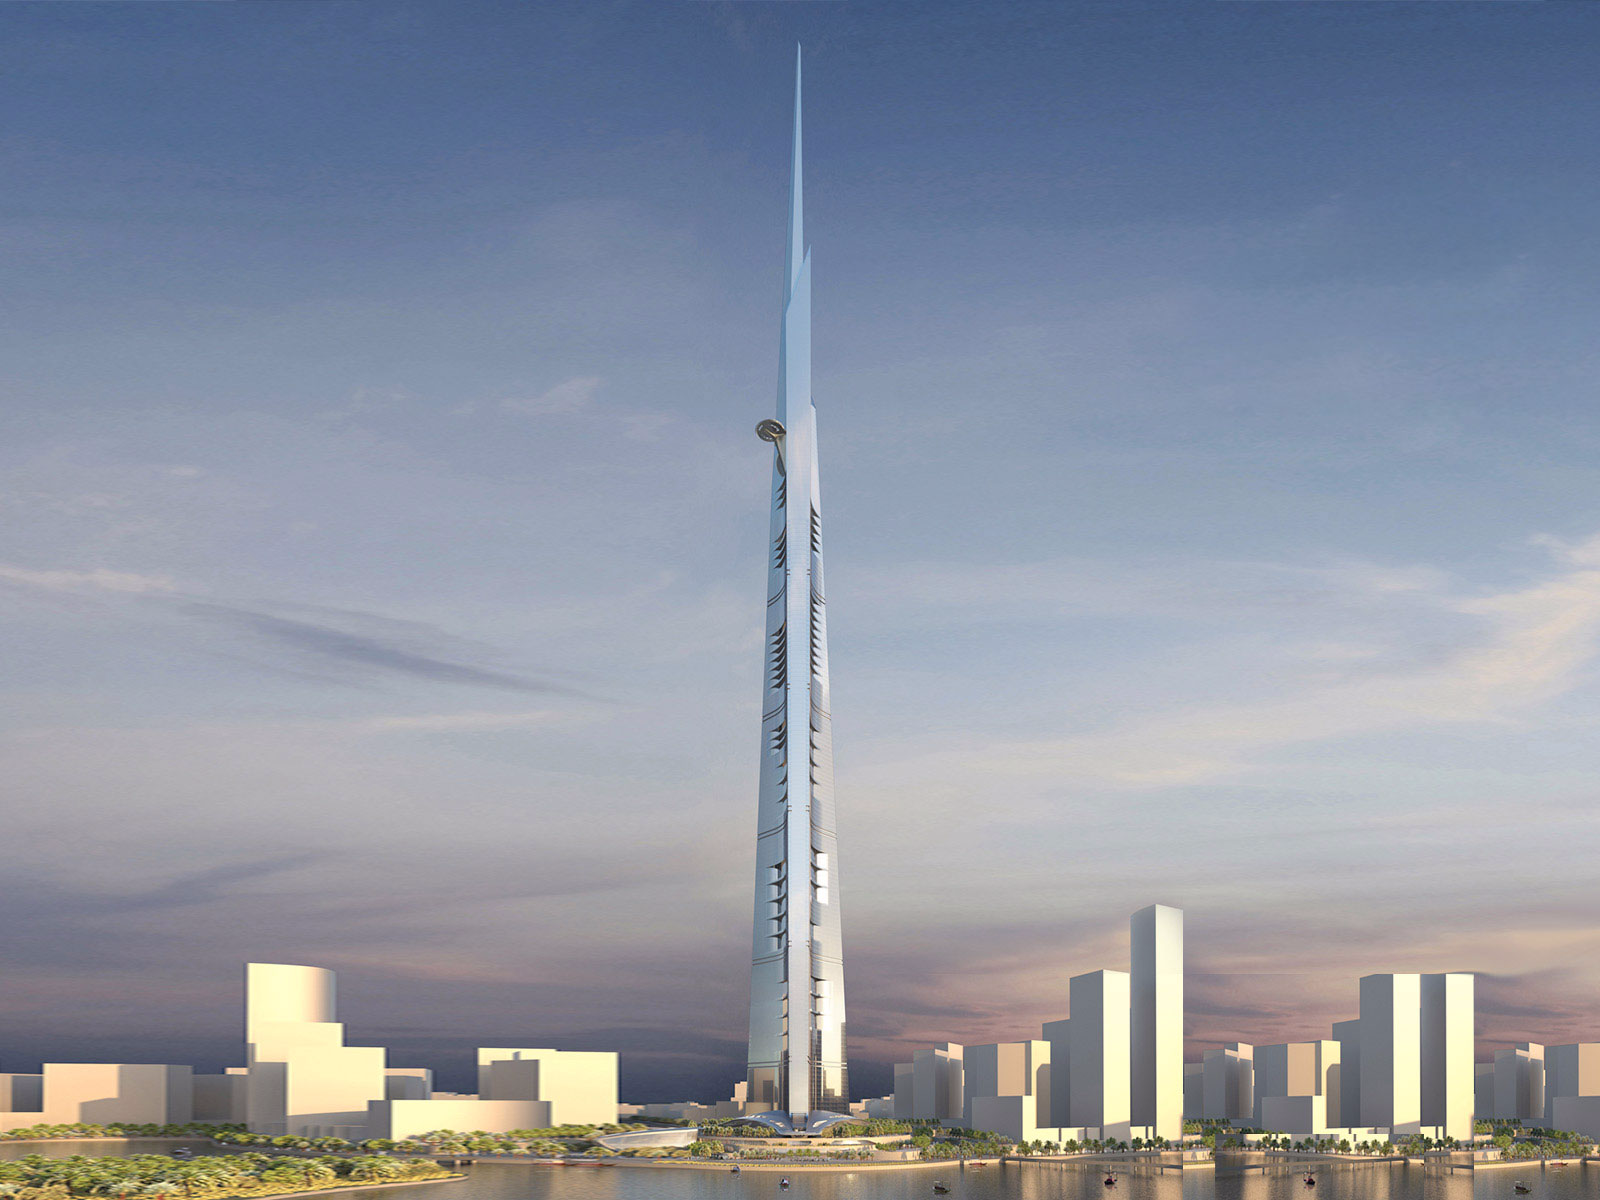 The Tallest Building In The World Jeddah Tower Is 5280 Ft And Coming In 2019 Tower Jeddah Tower Tallest Building In The World